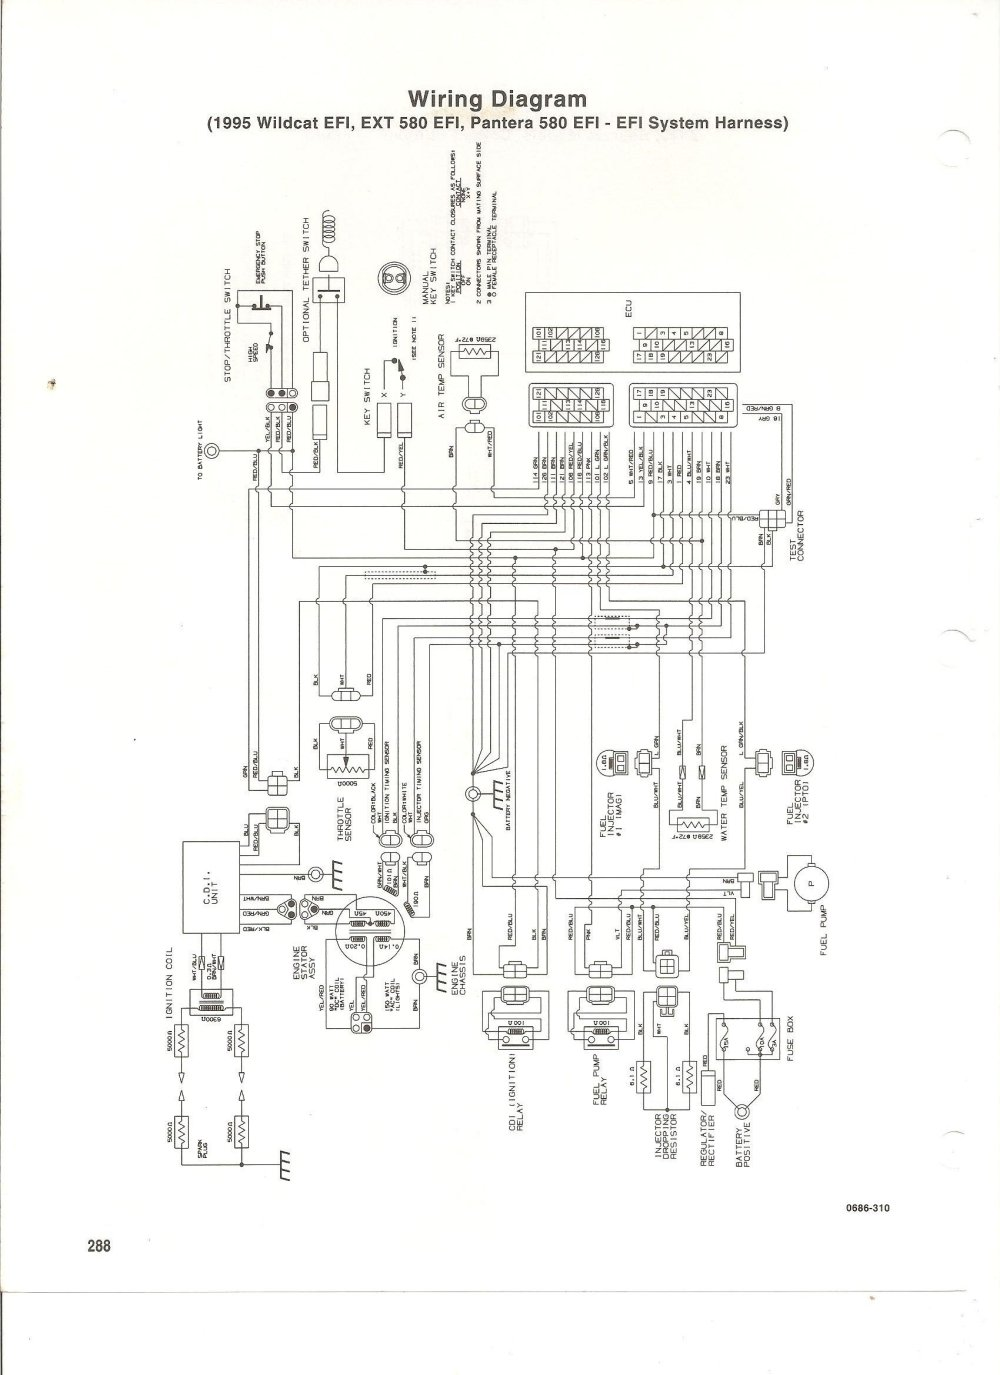 medium resolution of 93 wildcat wiring diagram wiring diagram portal gmc fuse box diagrams 1988 wildcat wiring diagram